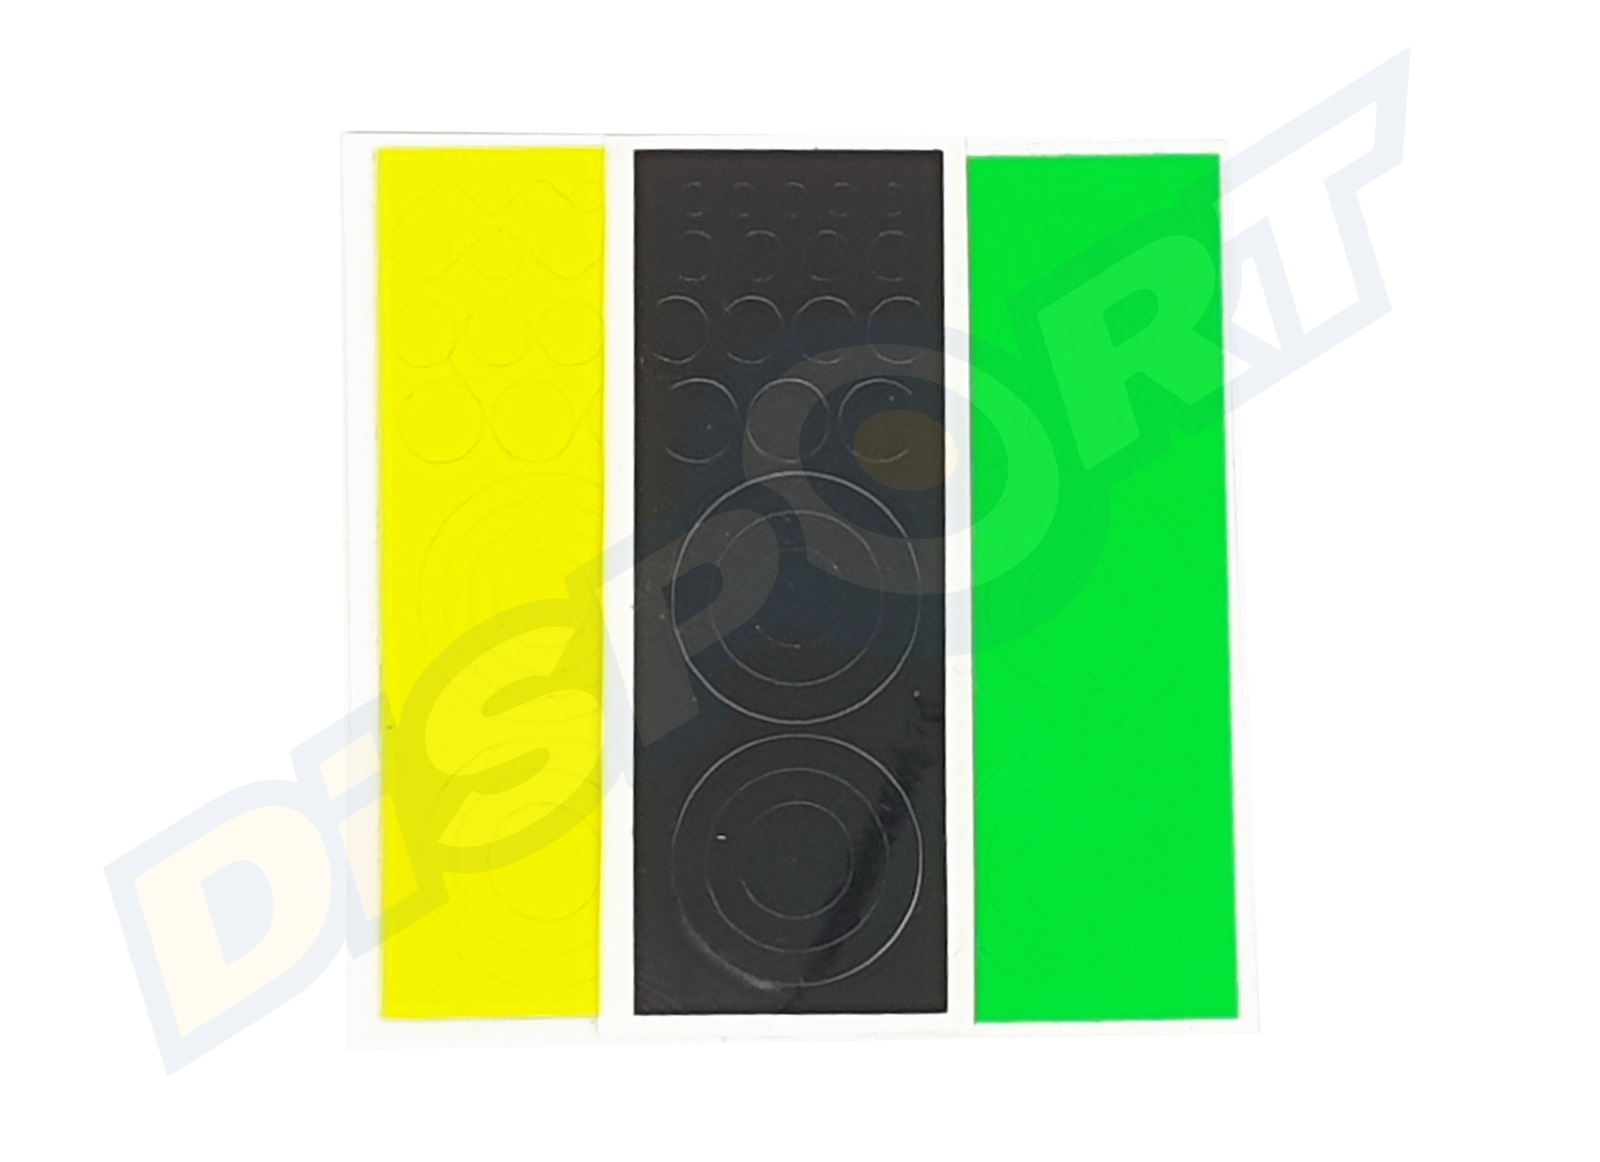 GAS PRO LENS DECALS KIT (1 BLACK, 1 FLUO GREEN, 1 FLUO YELLOW)